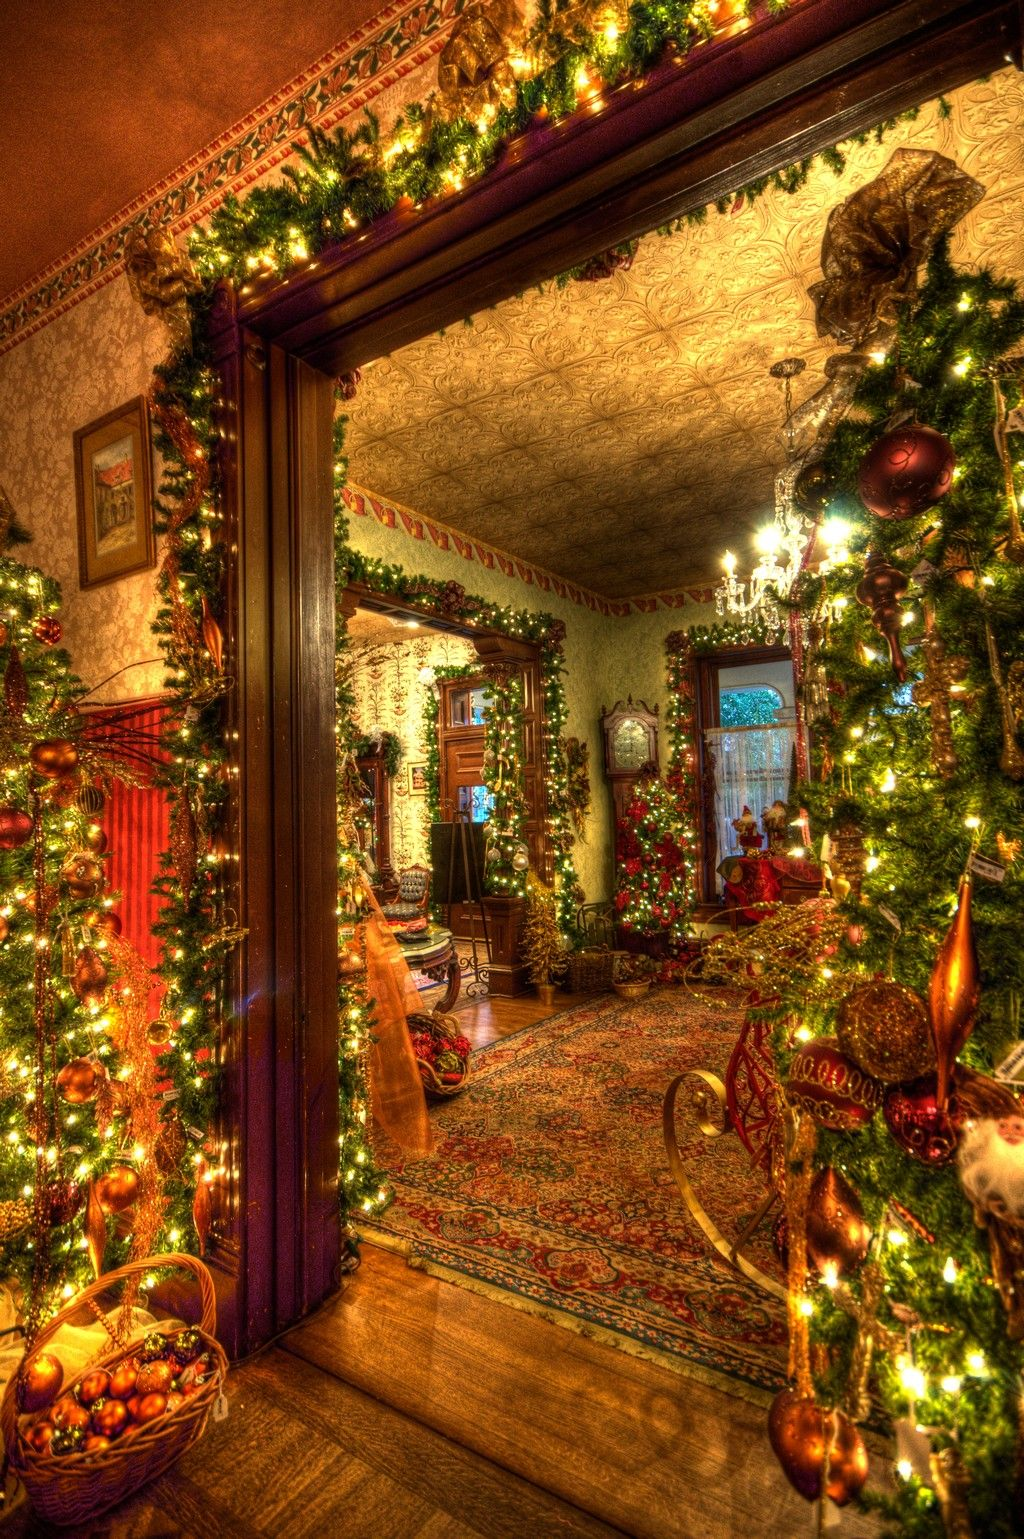 30 Beautiful Victorian Christmas Decorations Ideas Victorian Christmas Victorian Christmas